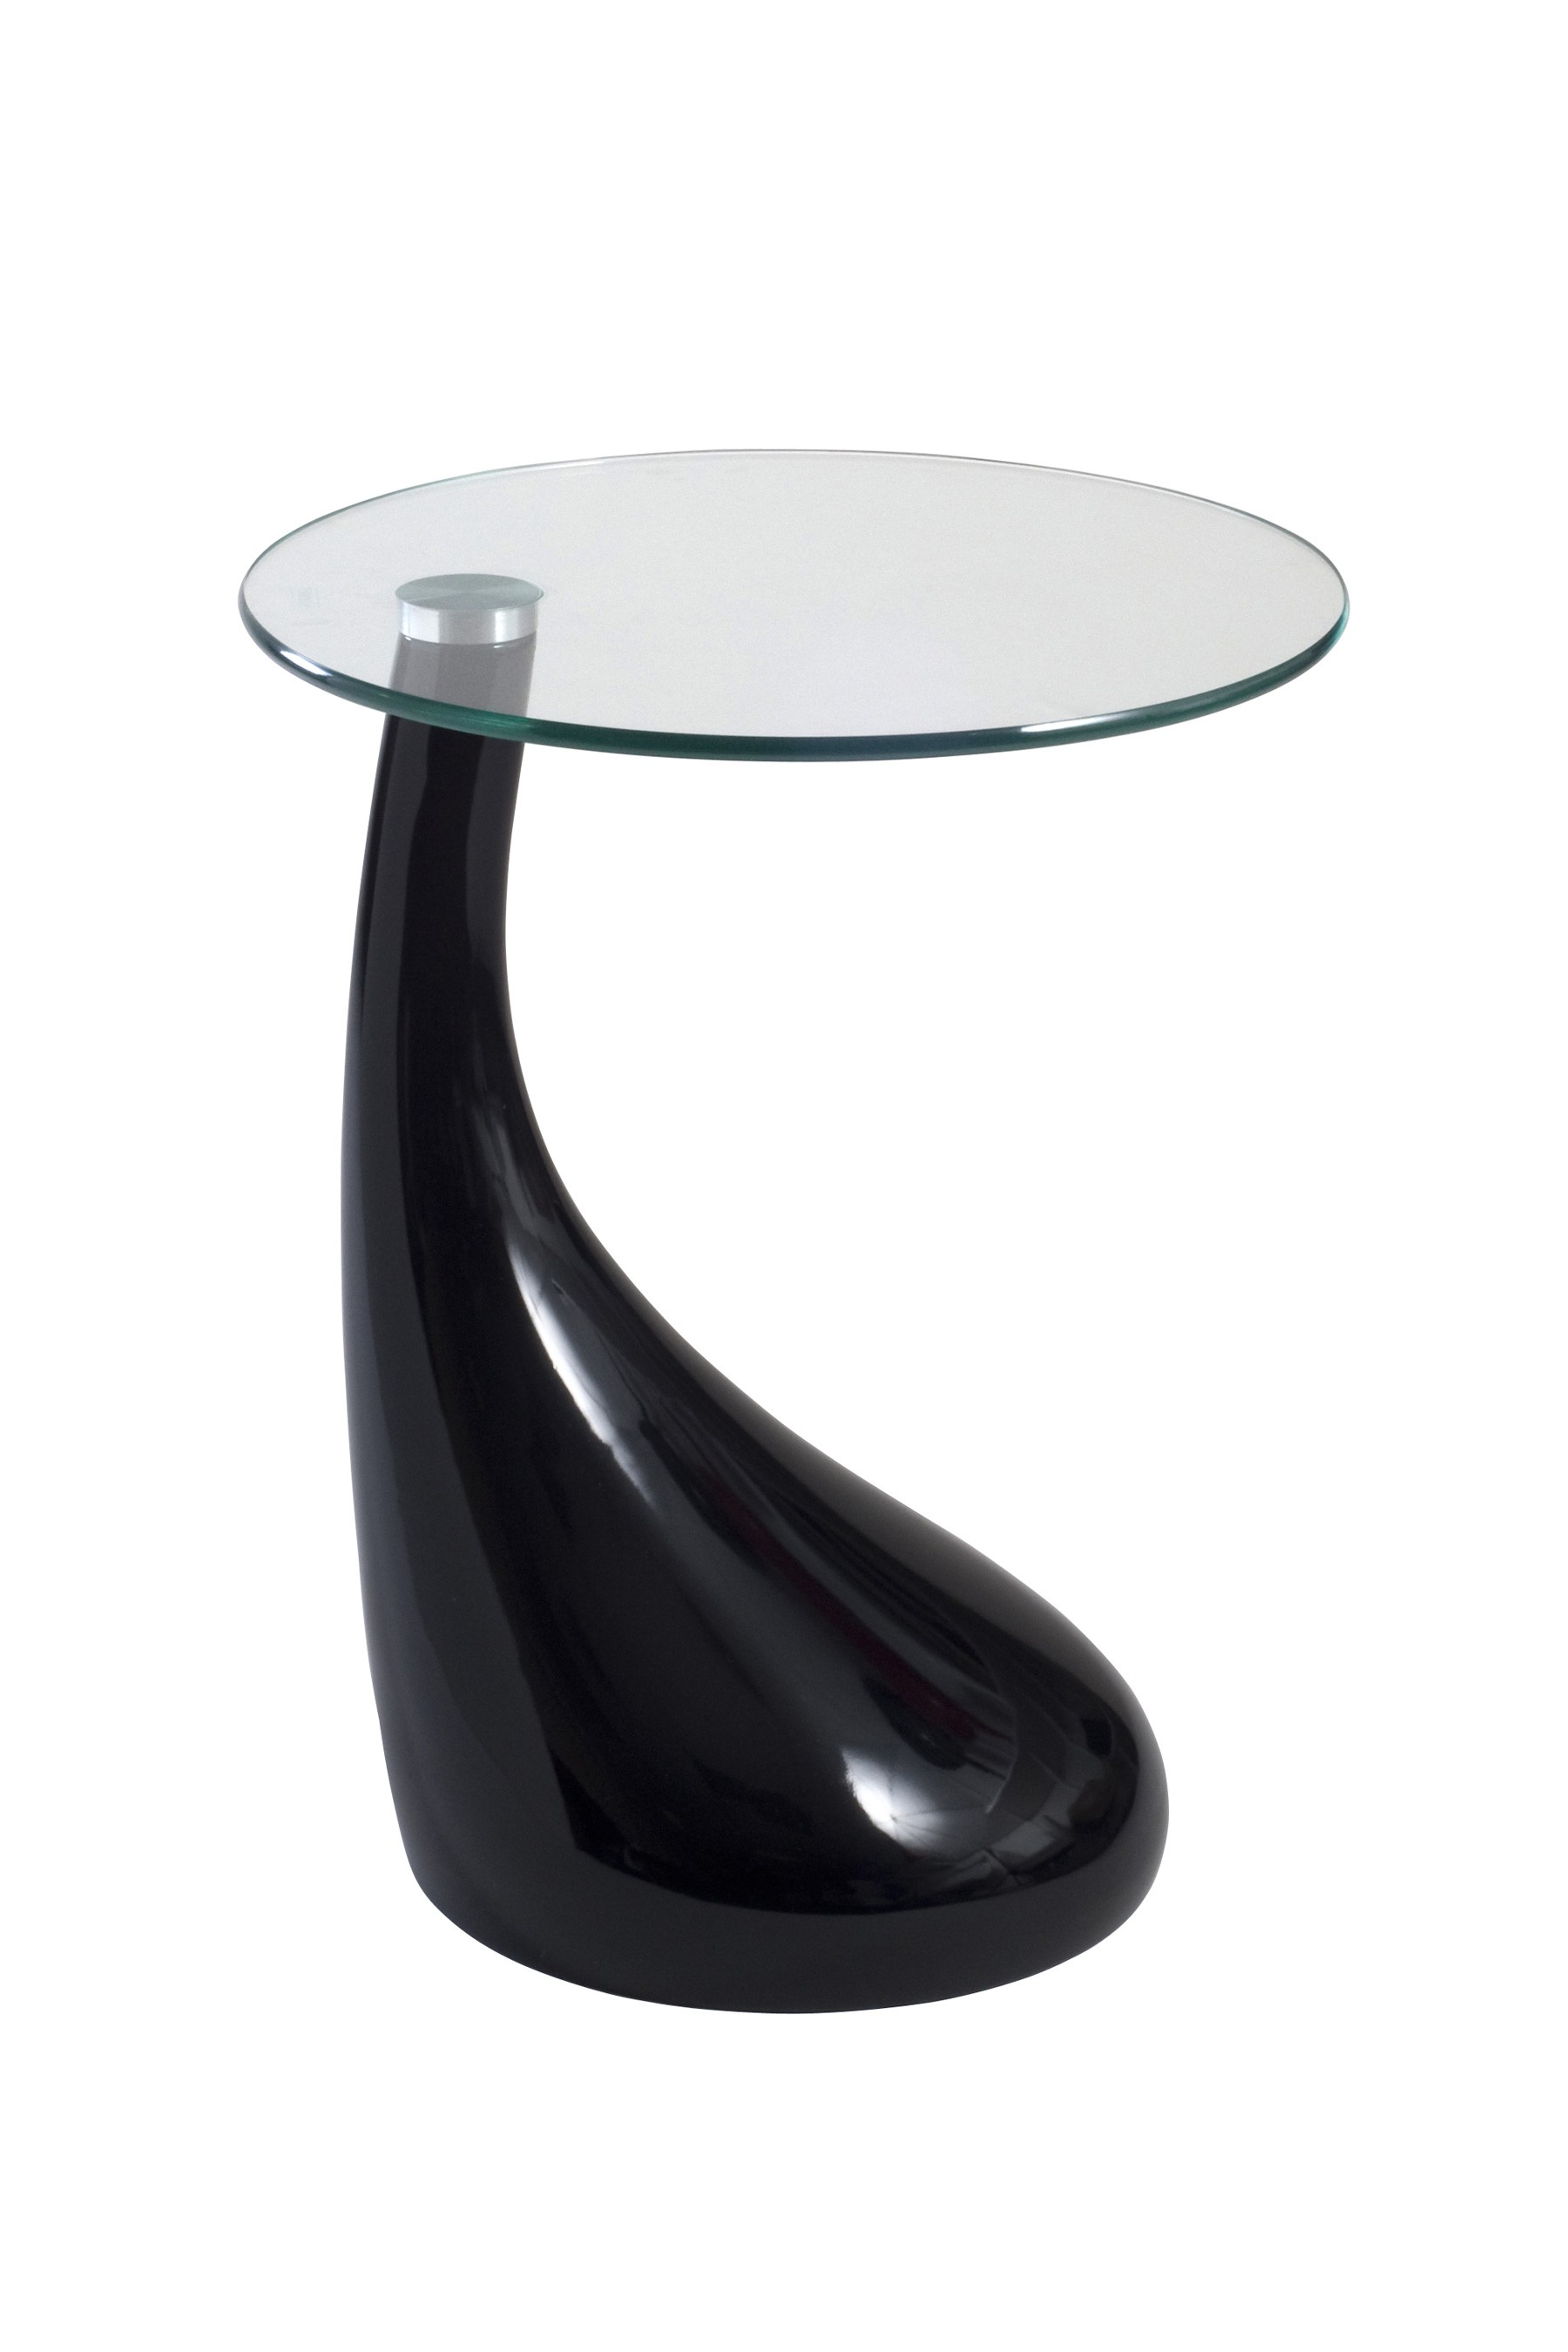 brilliant small black accent table with beautiful primitive best round glass side curving acrylic pedestal base tall tables living room blue mosaic outdoor chair and usb for